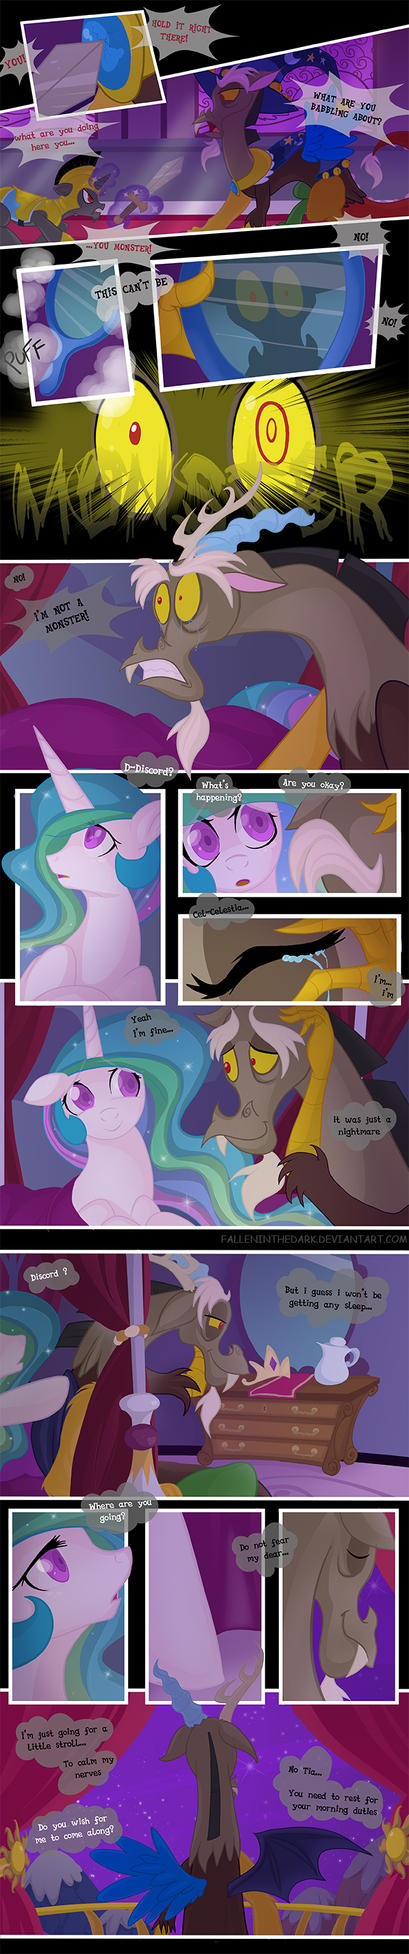 Twists and Turns - Part 9 by FallenInTheDark